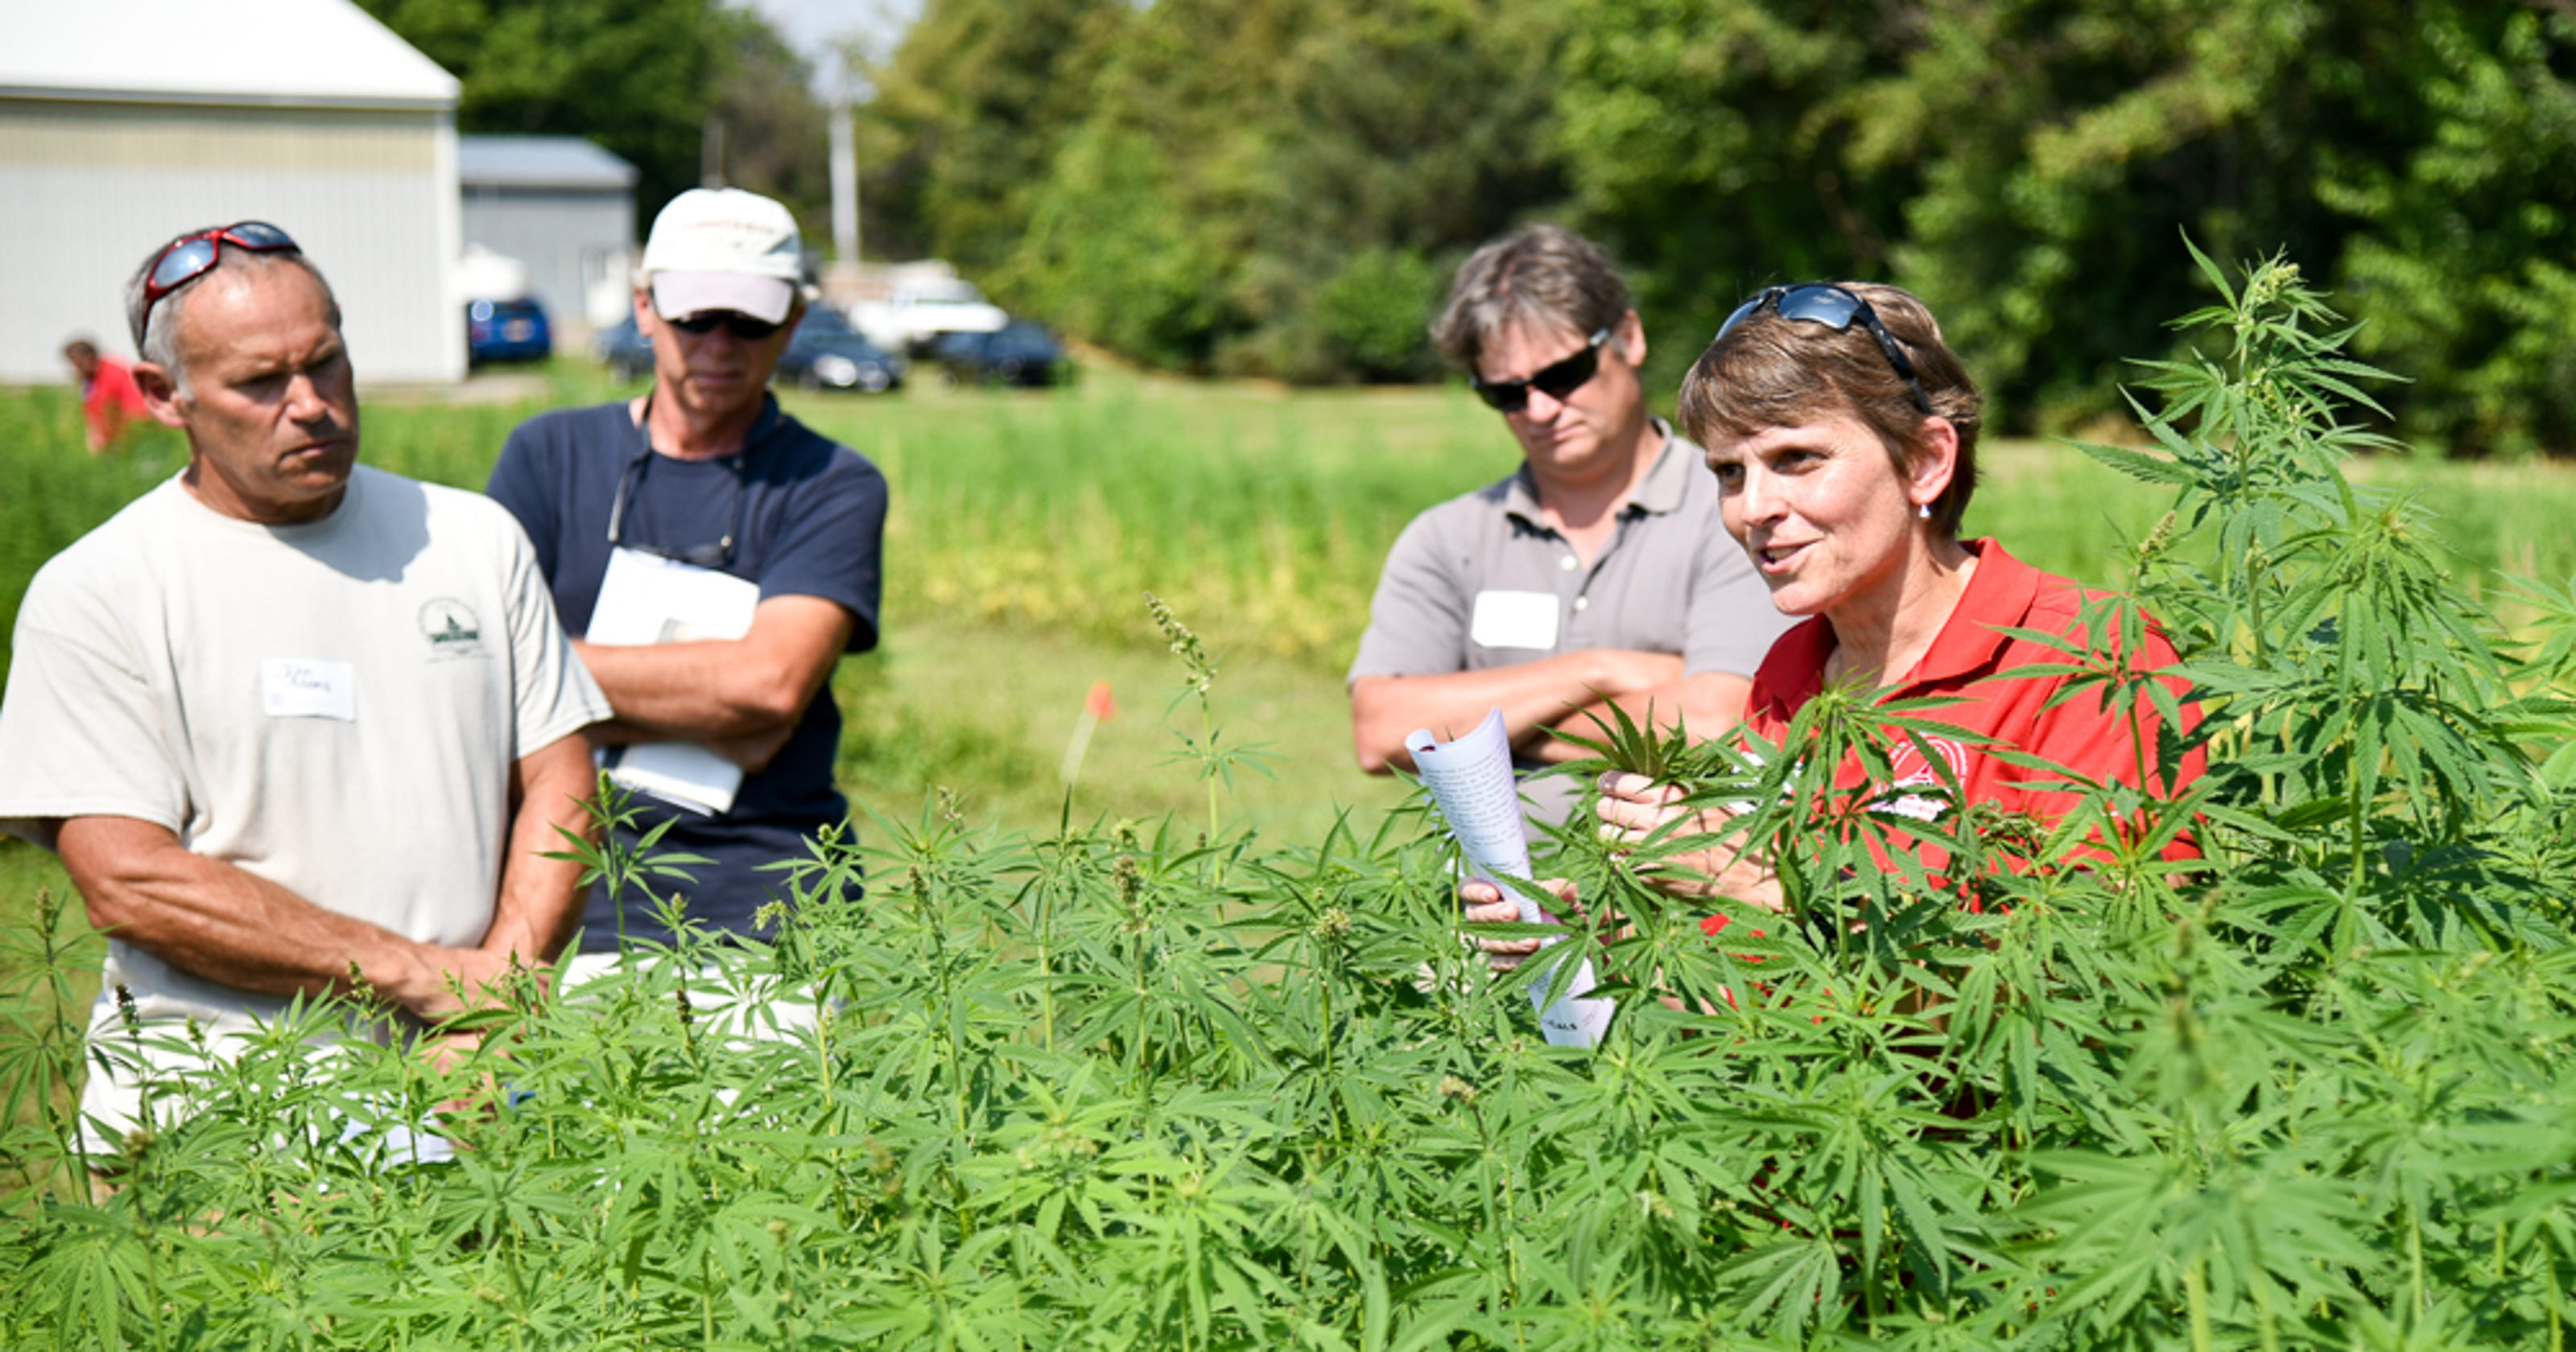 New York hemp farmers foresee big economic benefits